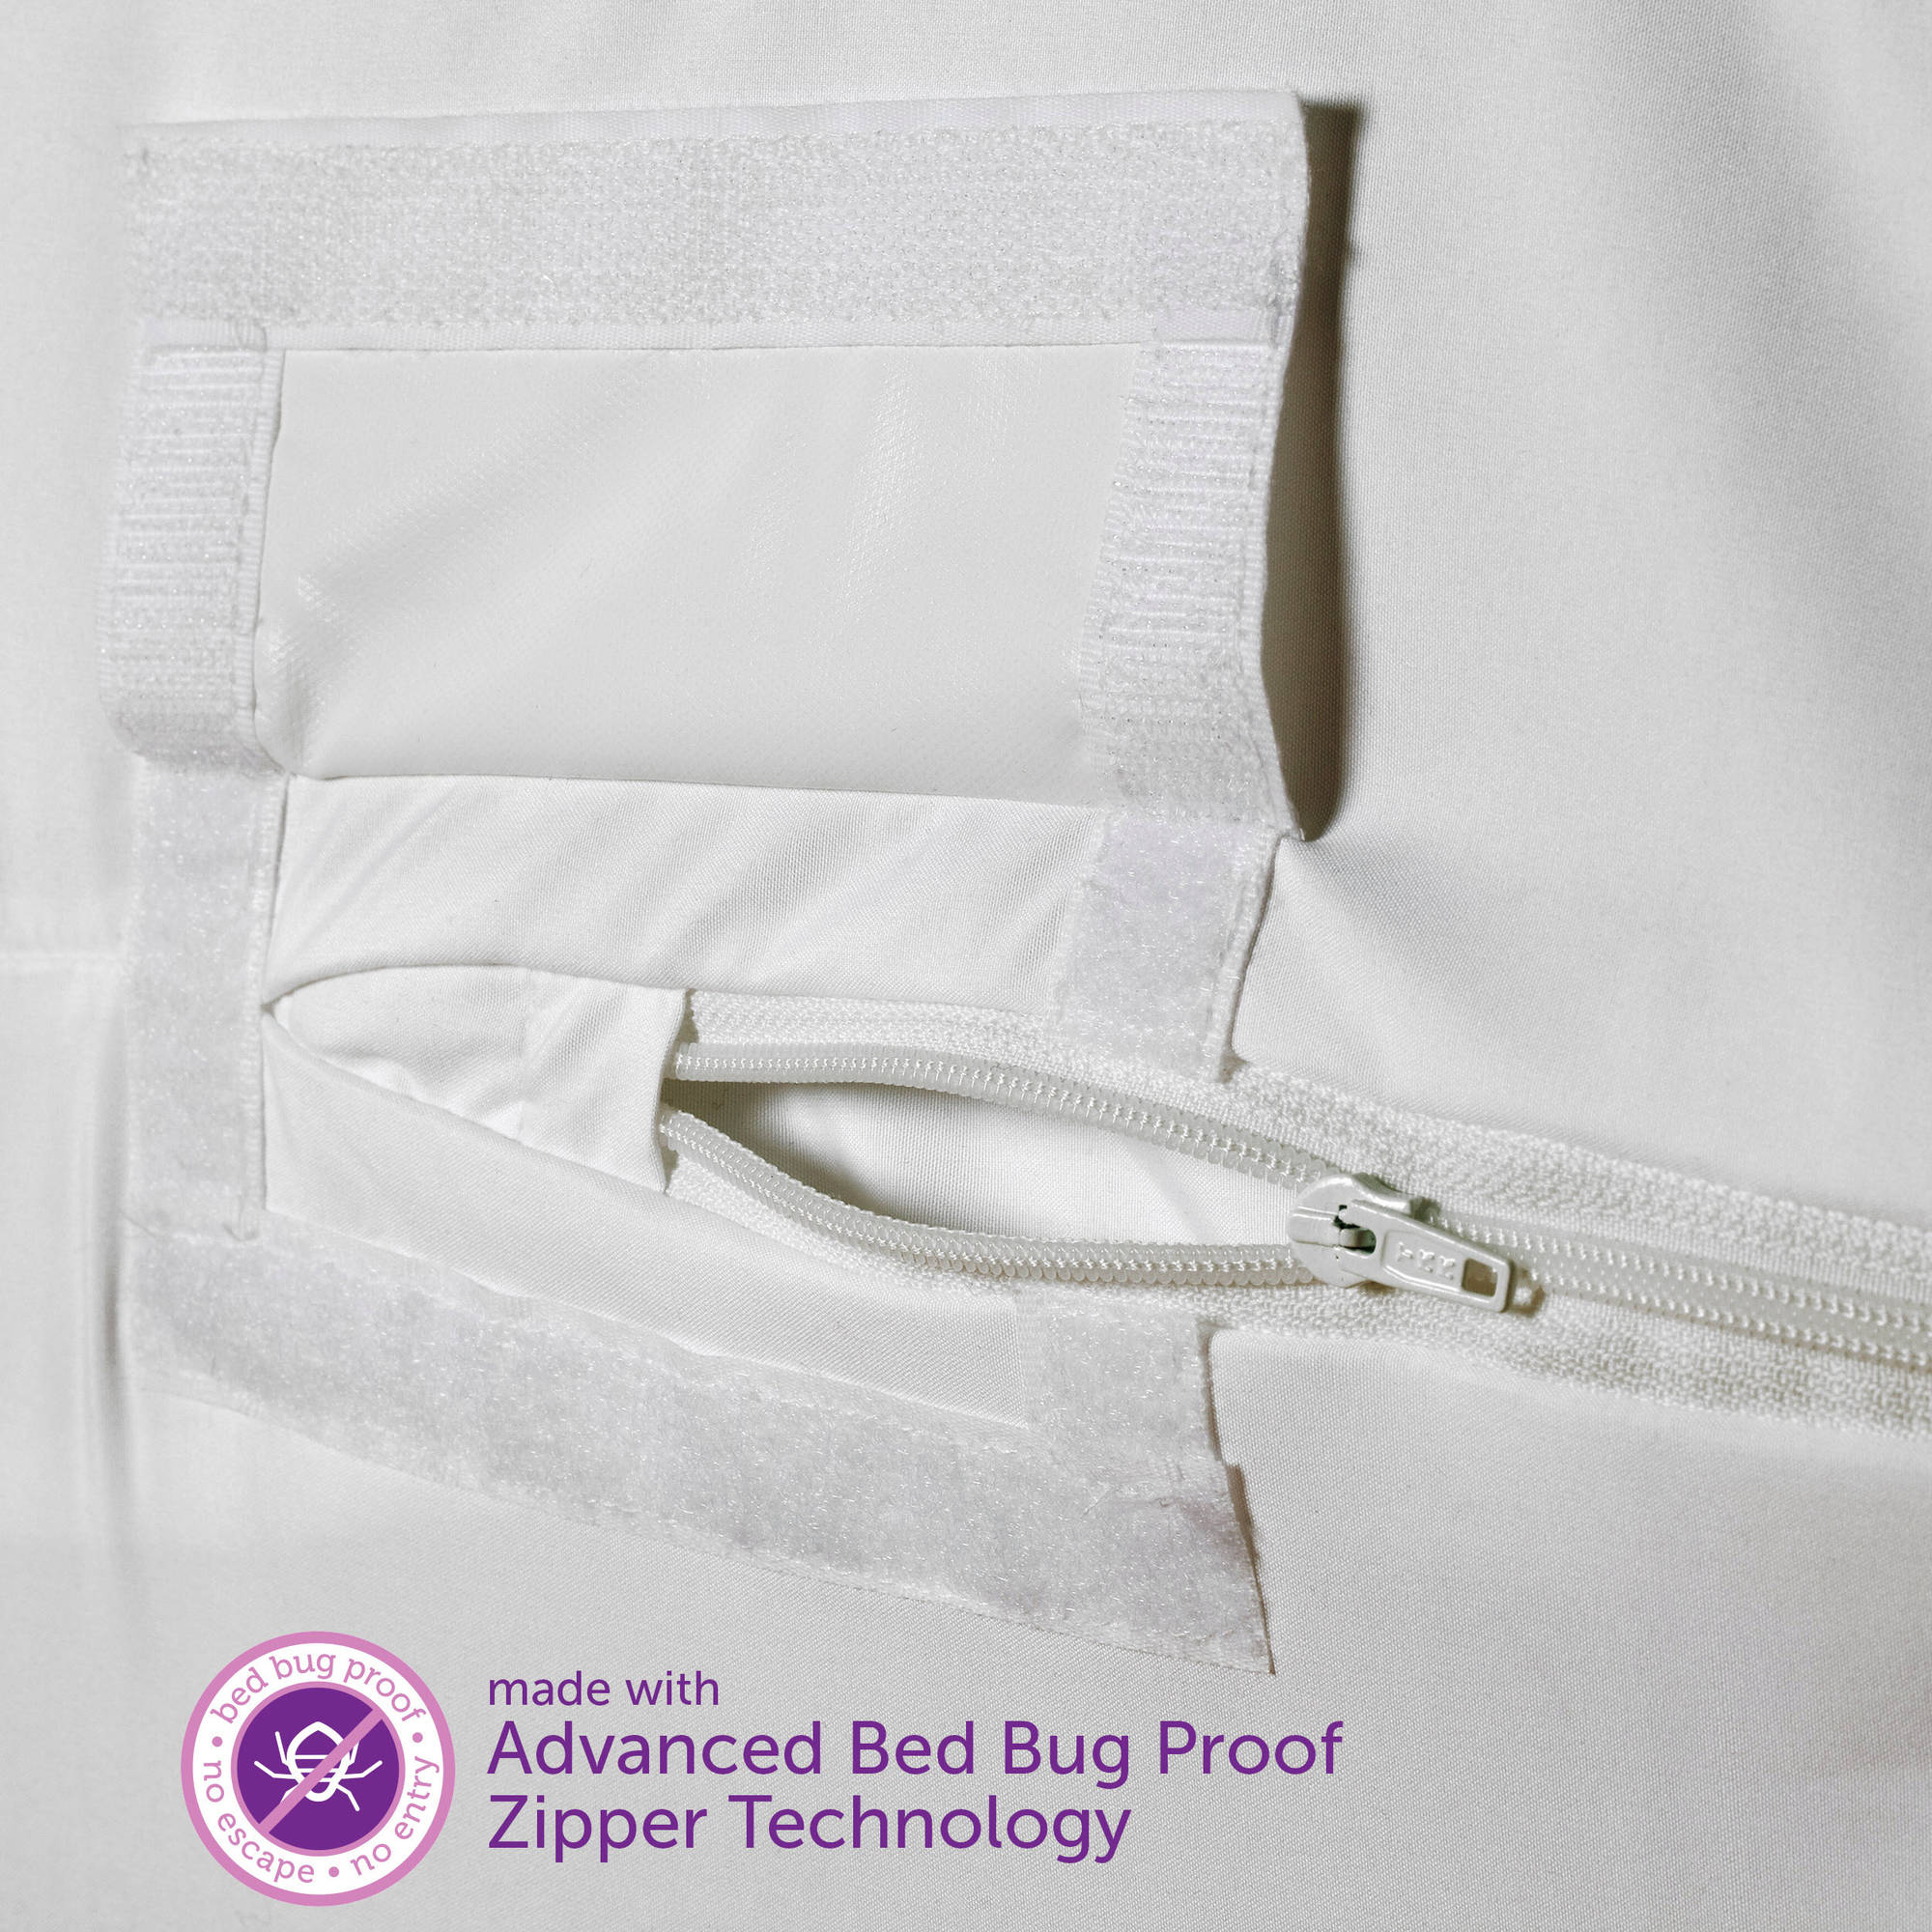 Mattress cover walmart Bed Wetting Allerease Maximum Allergy Bed Bug Protection Zippered Mattress Protector Walmartcom Walmart Allerease Maximum Allergy Bed Bug Protection Zippered Mattress